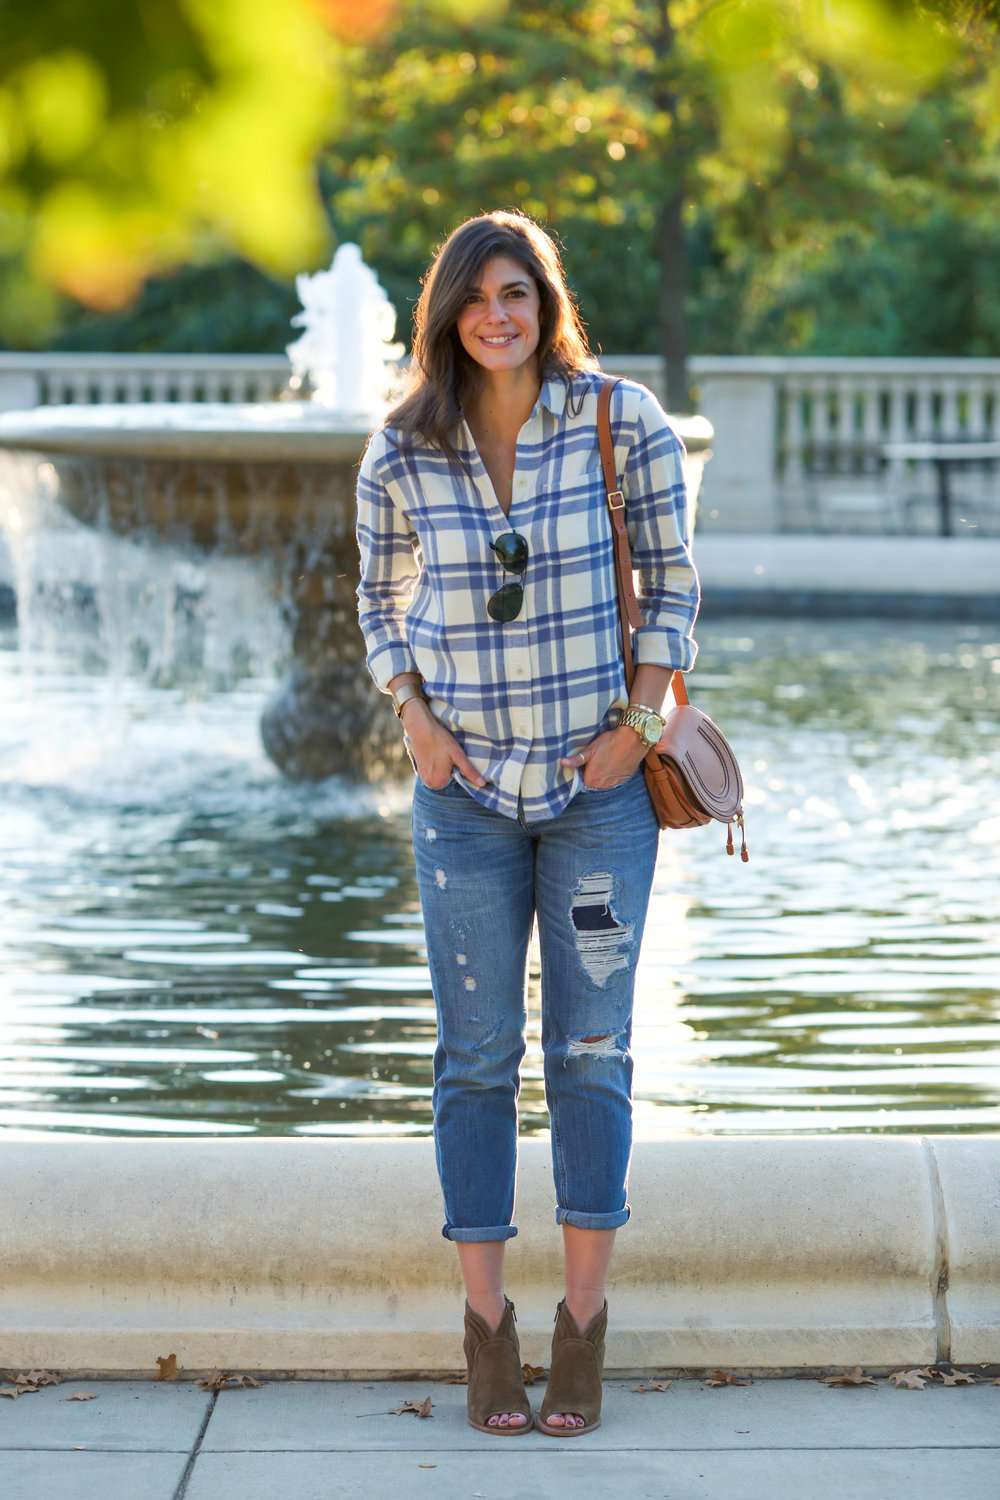 b70468f24922a9 Fall Uniform: Boyfriend Jeans + Button Down + Booties - Lauren Schwaiger